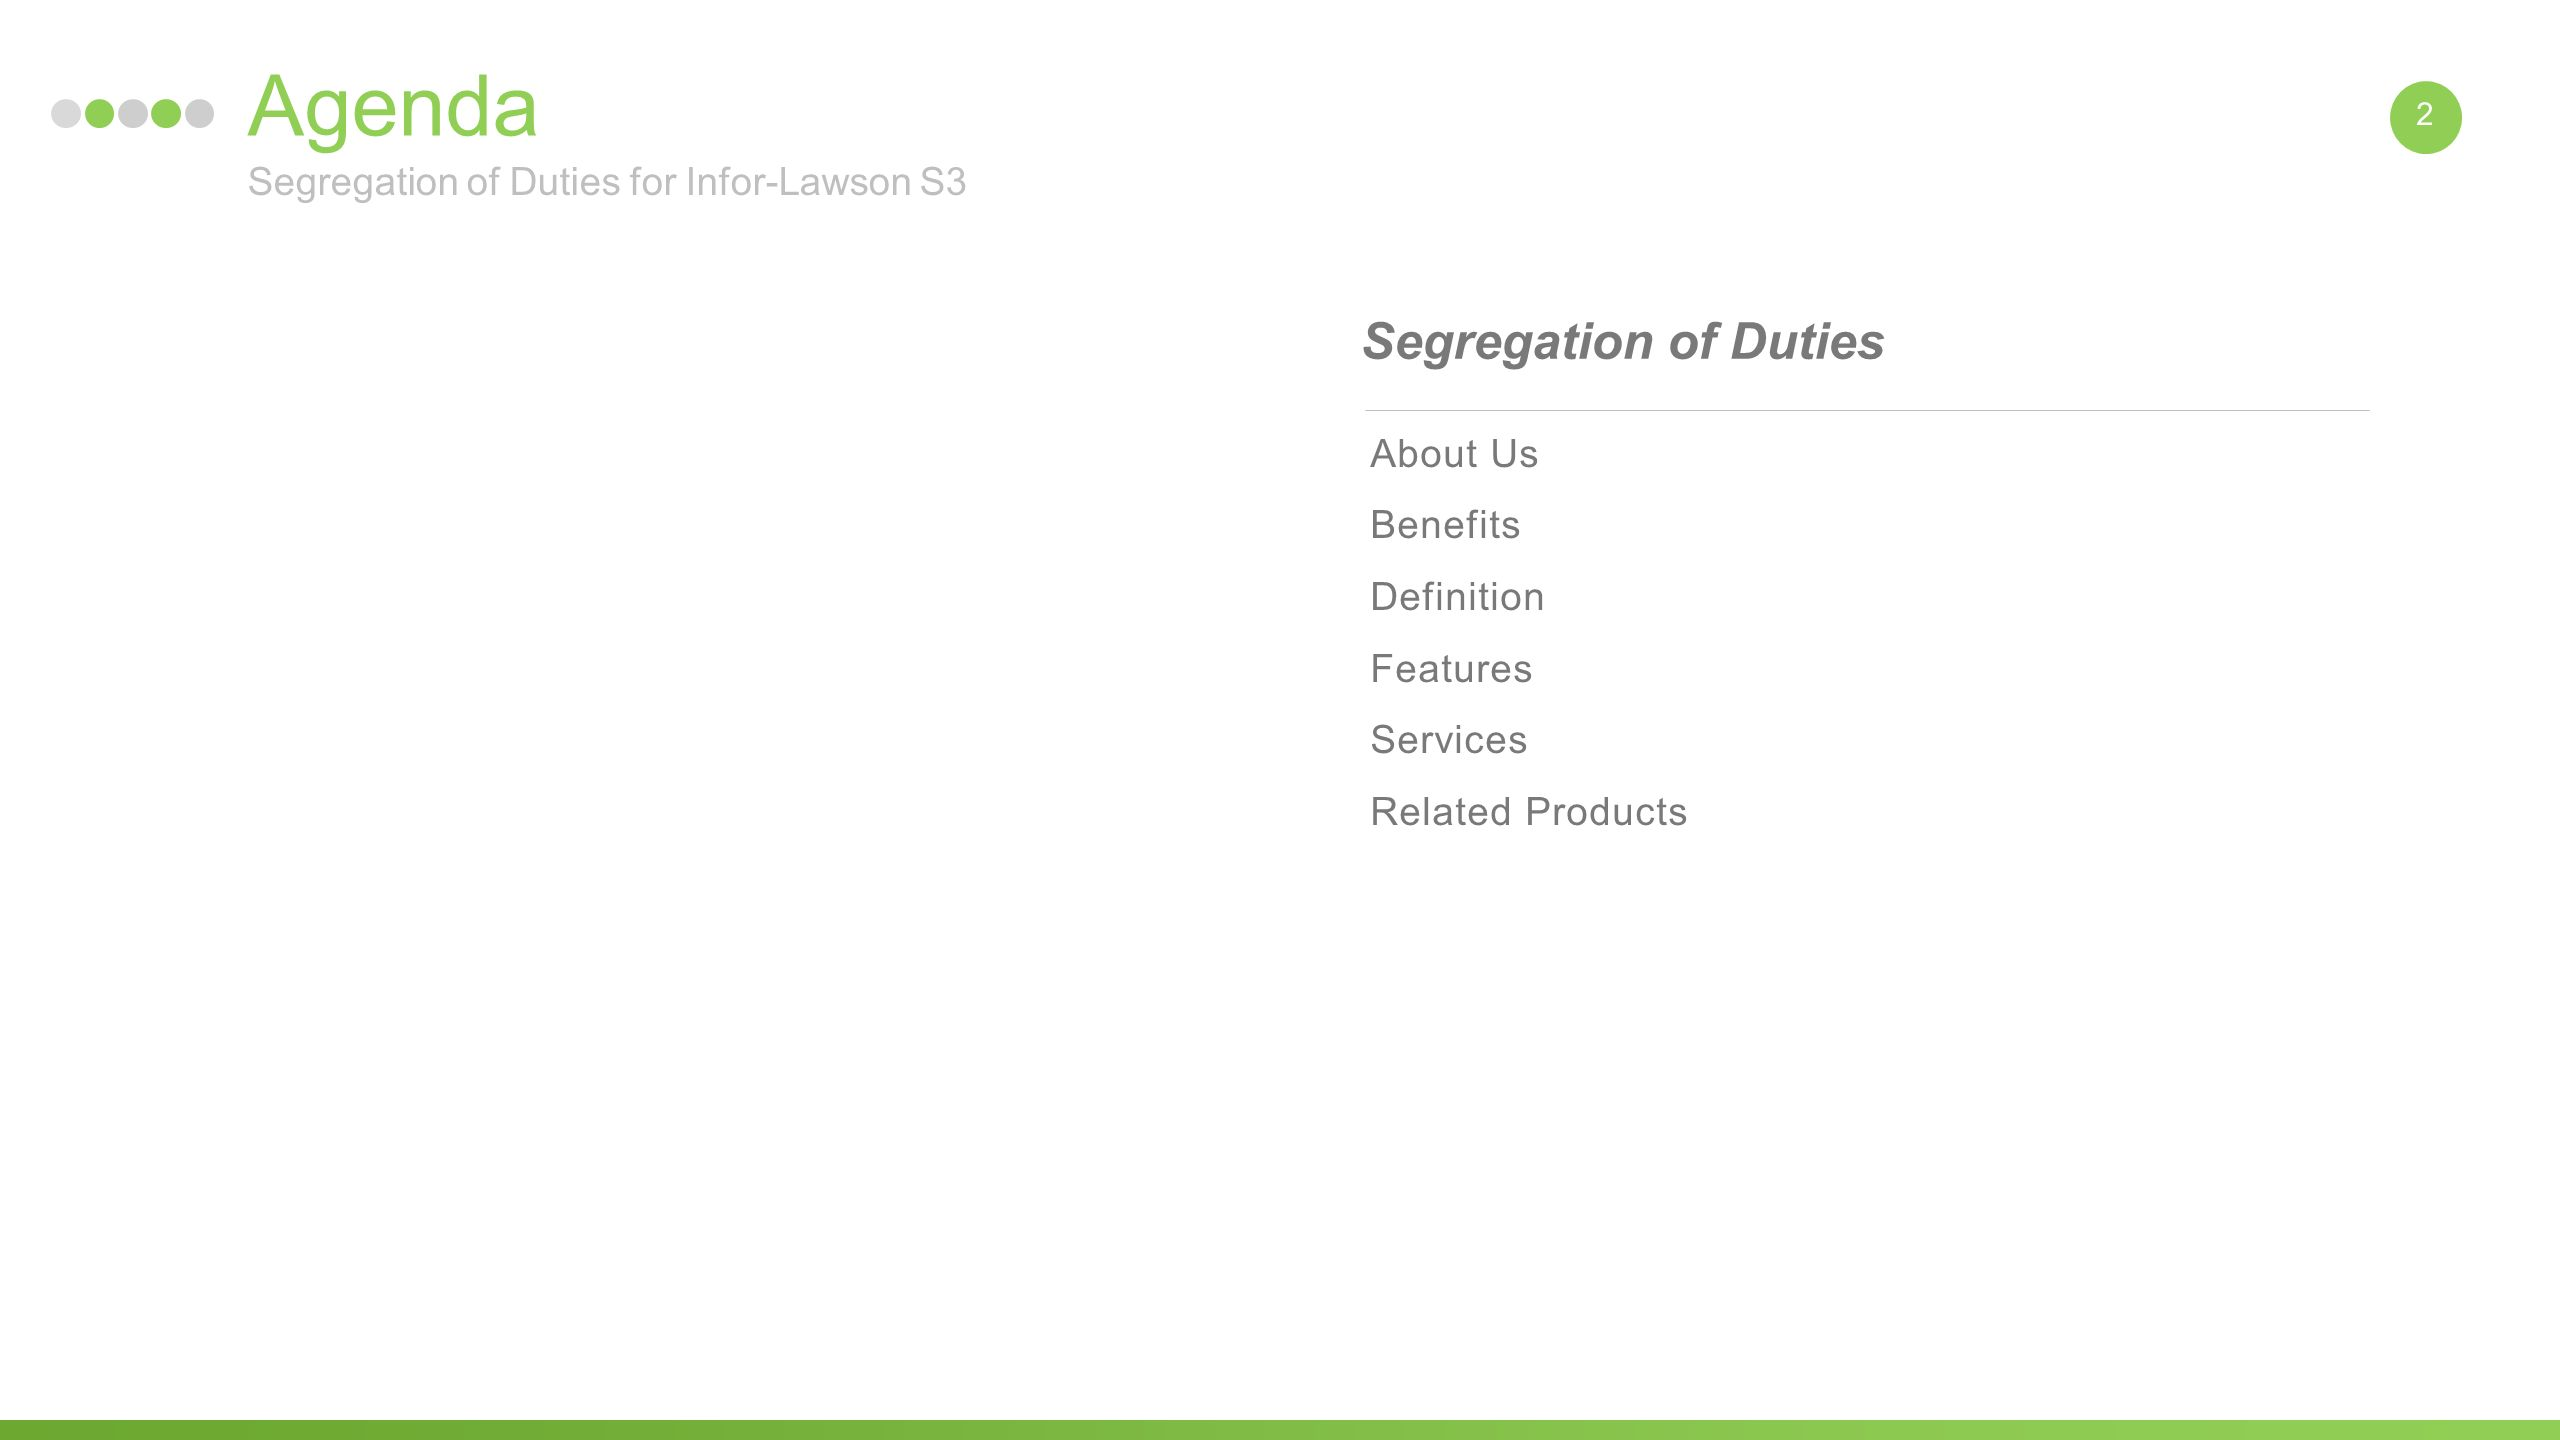 2 2 agenda about us benefits definition features services related products segregation of duties segregation of duties for infor lawson s3